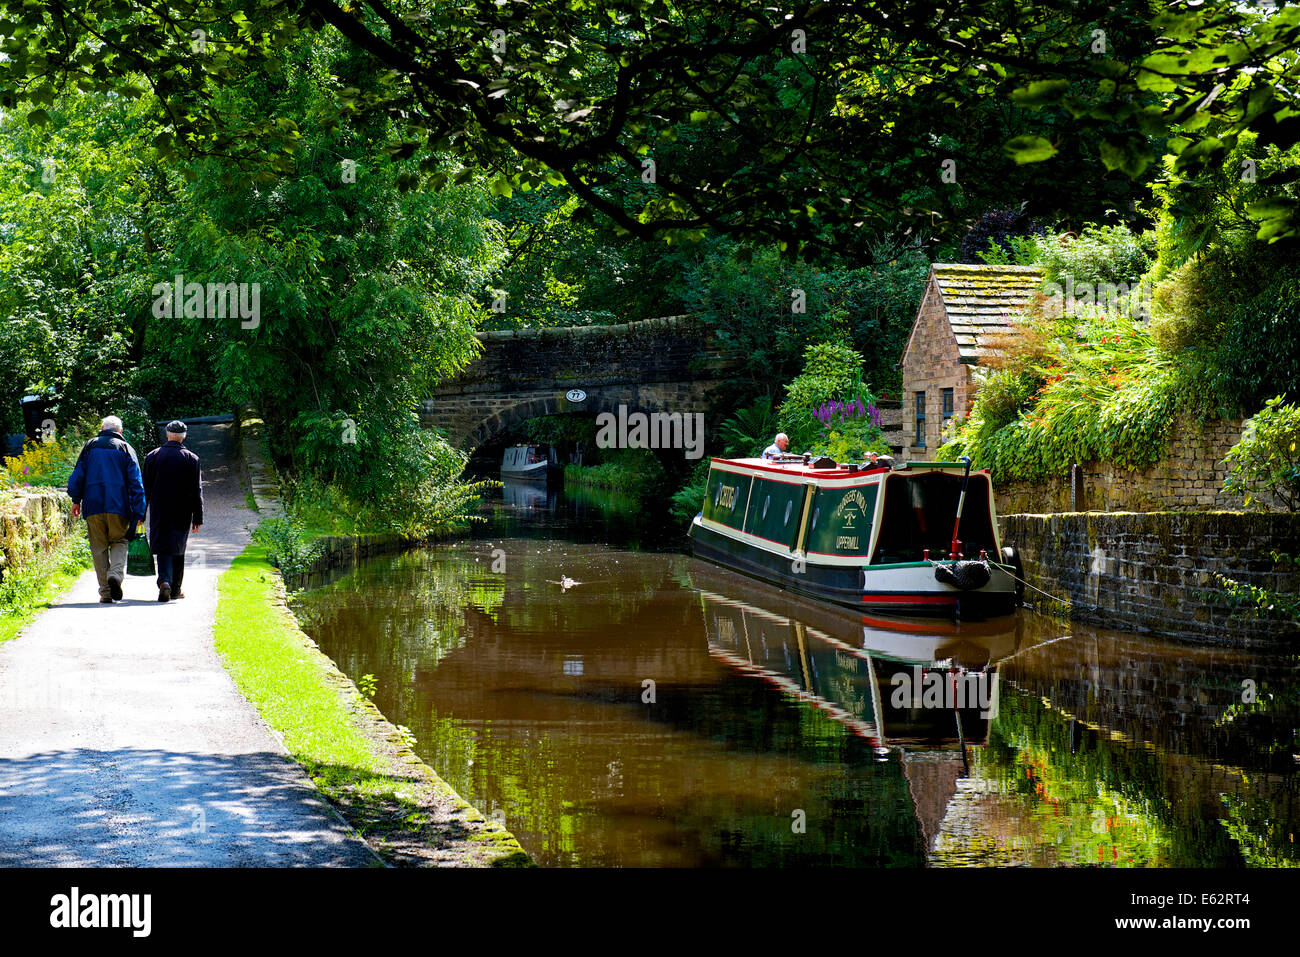 The Huddersfield Narrow Canal at Uppermill, Saddleworth, West Yorkshire, England UK - Stock Image